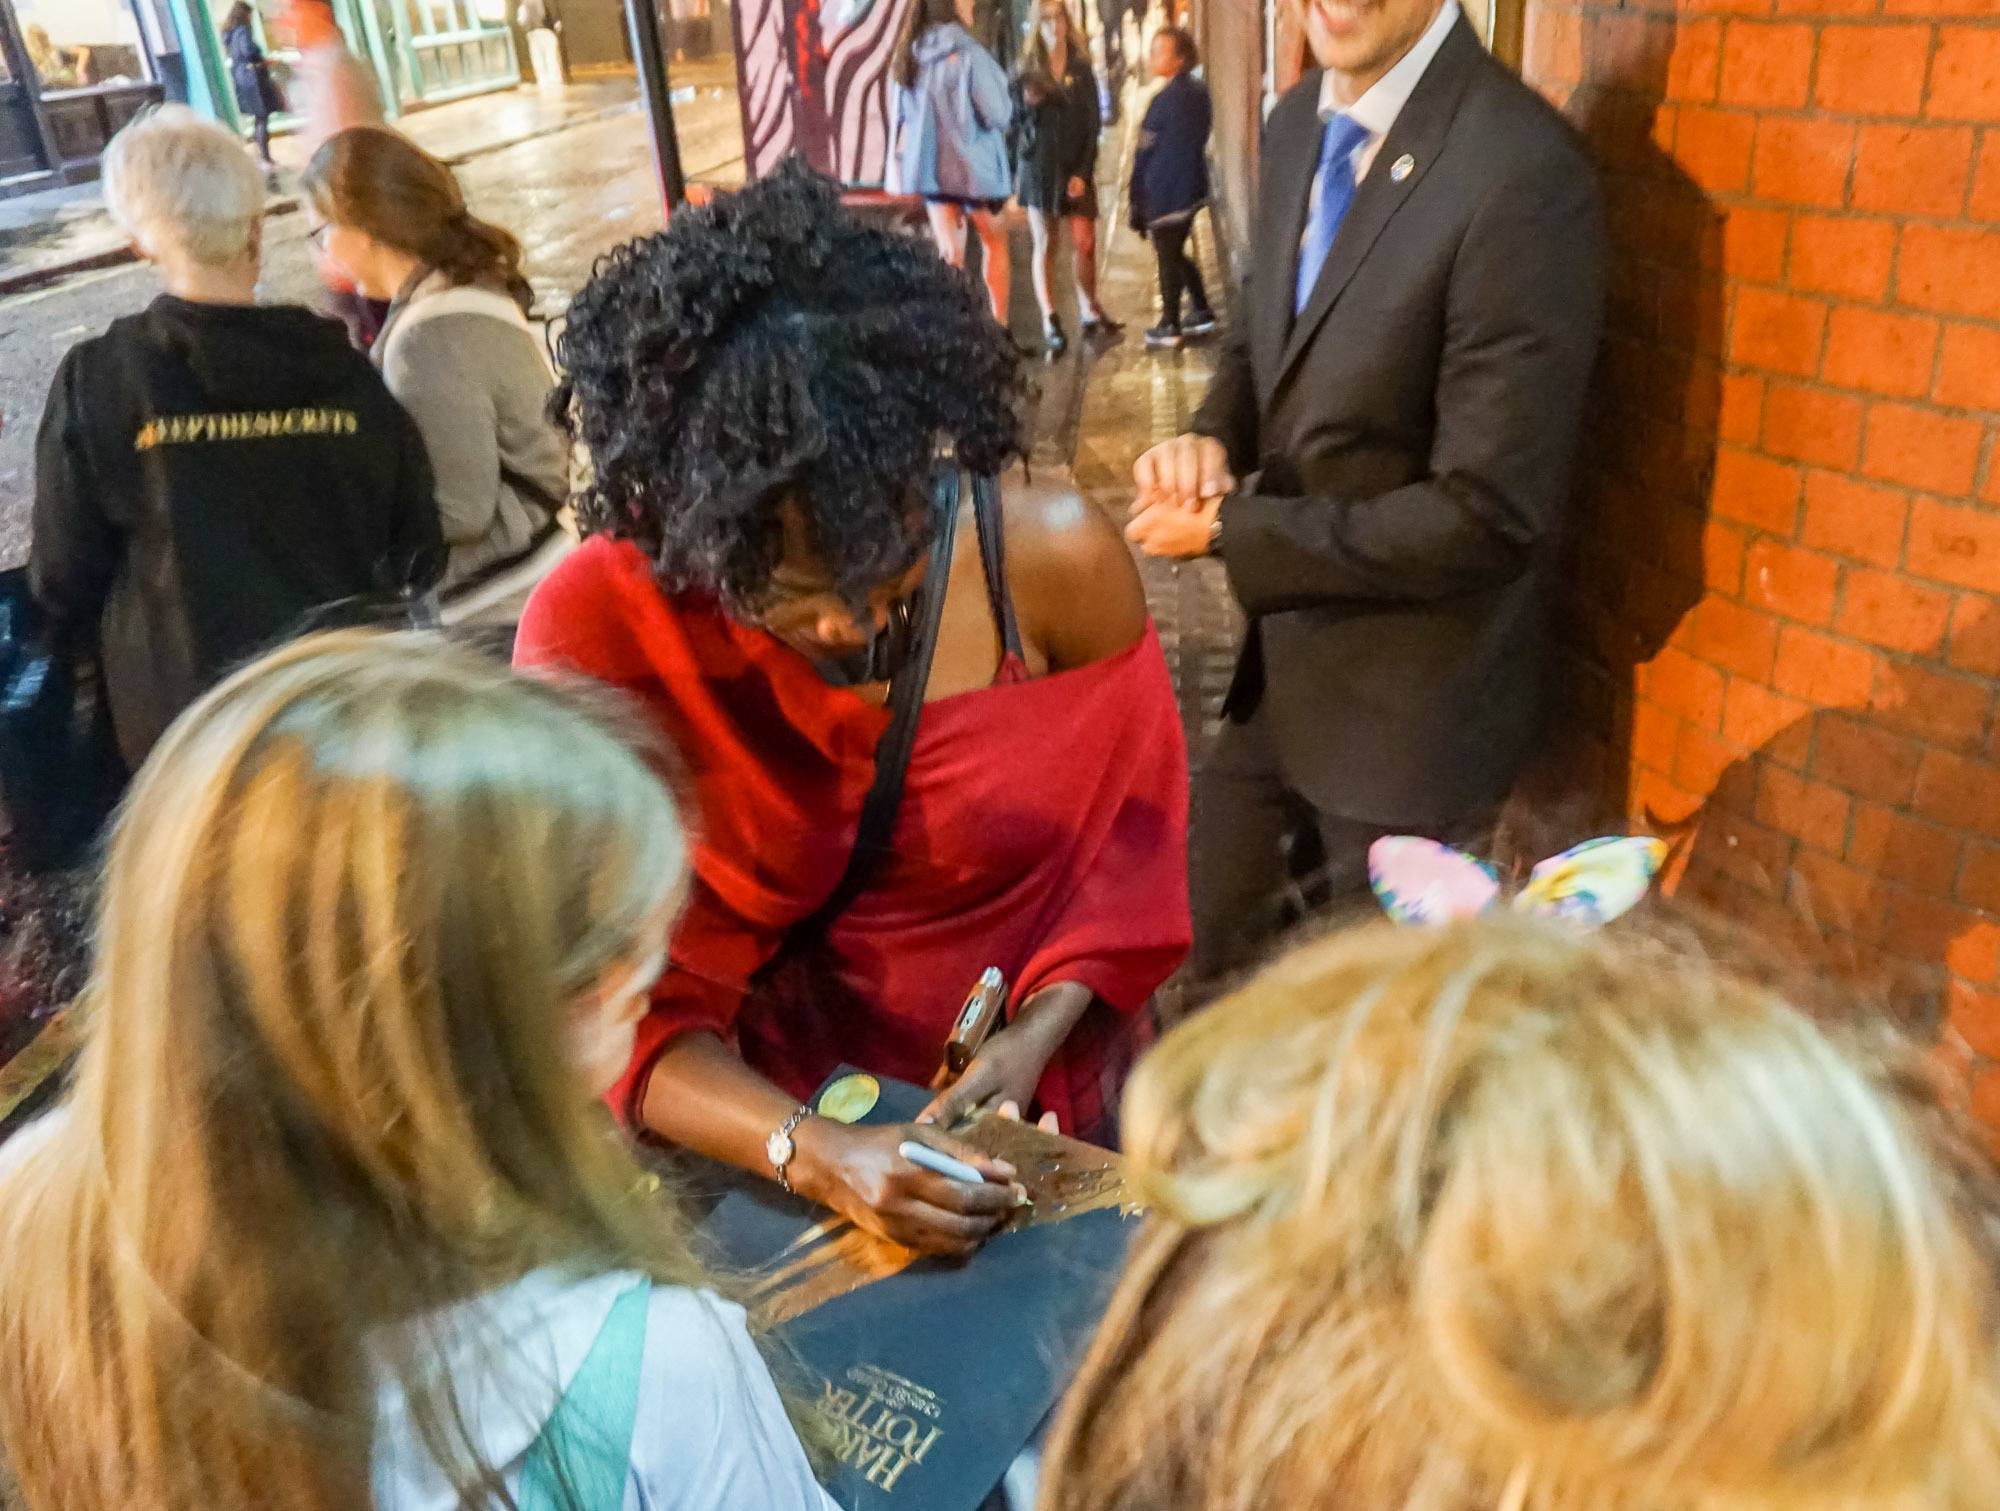 Actors sign autographs near the backstage door of the Cursed Child play in London.